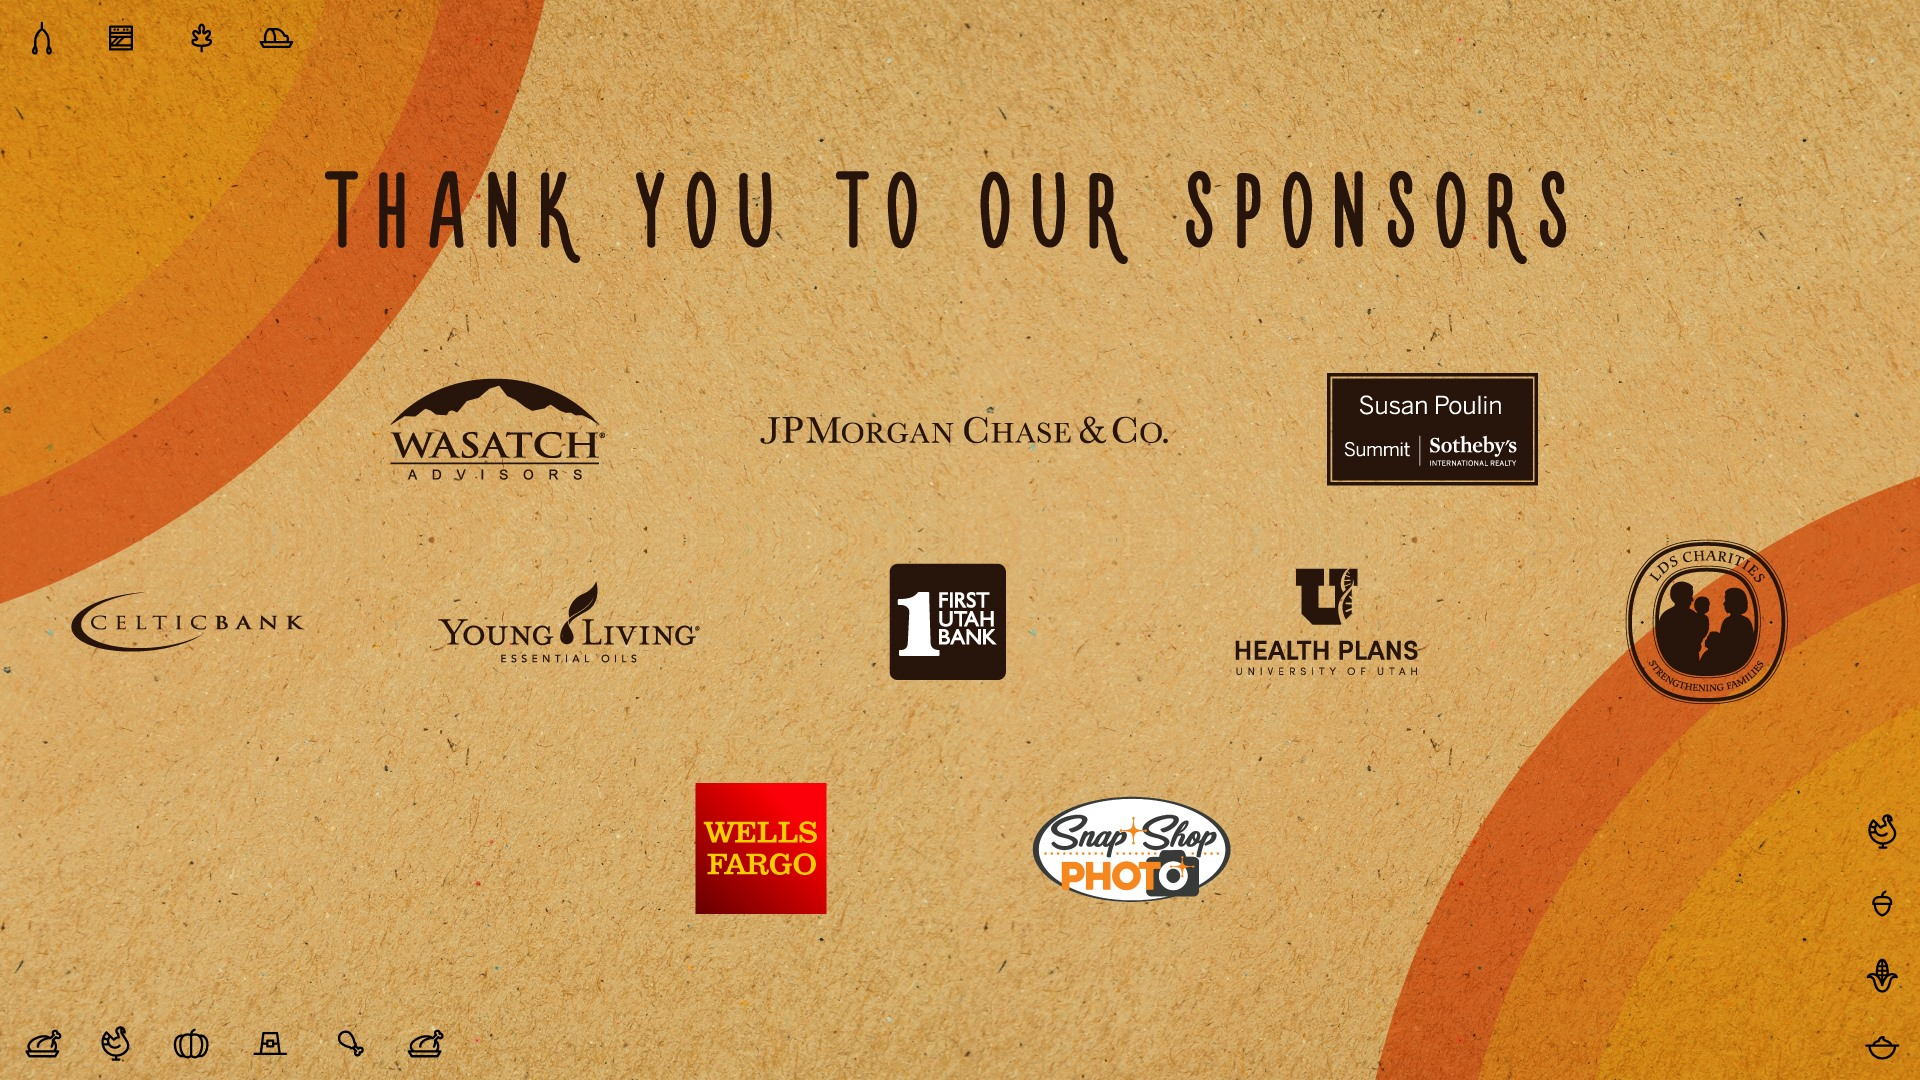 IRC Breaking Bread 2018 Sponsors: Wasatch Advisors, JPMorgan Chase & Co., Susan Poulin of Summit Sotheby's, LDS Charities, Young Living Essential Oils, Celtic Bank, First Utah Bank, Health Plans University of Utah, Wells Fargo and Snap Shop Photo.